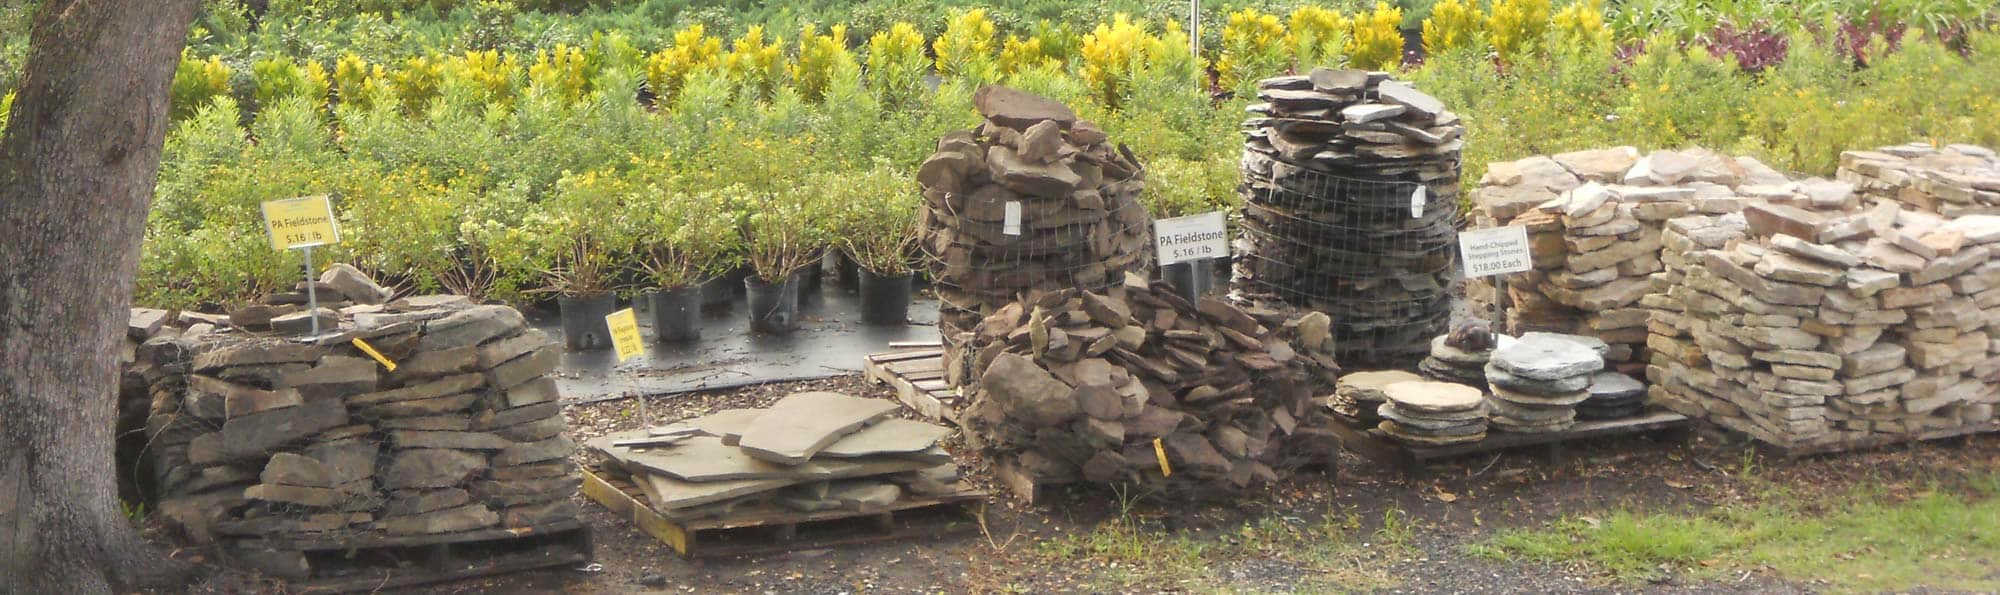 Landscaping supplies in bulk